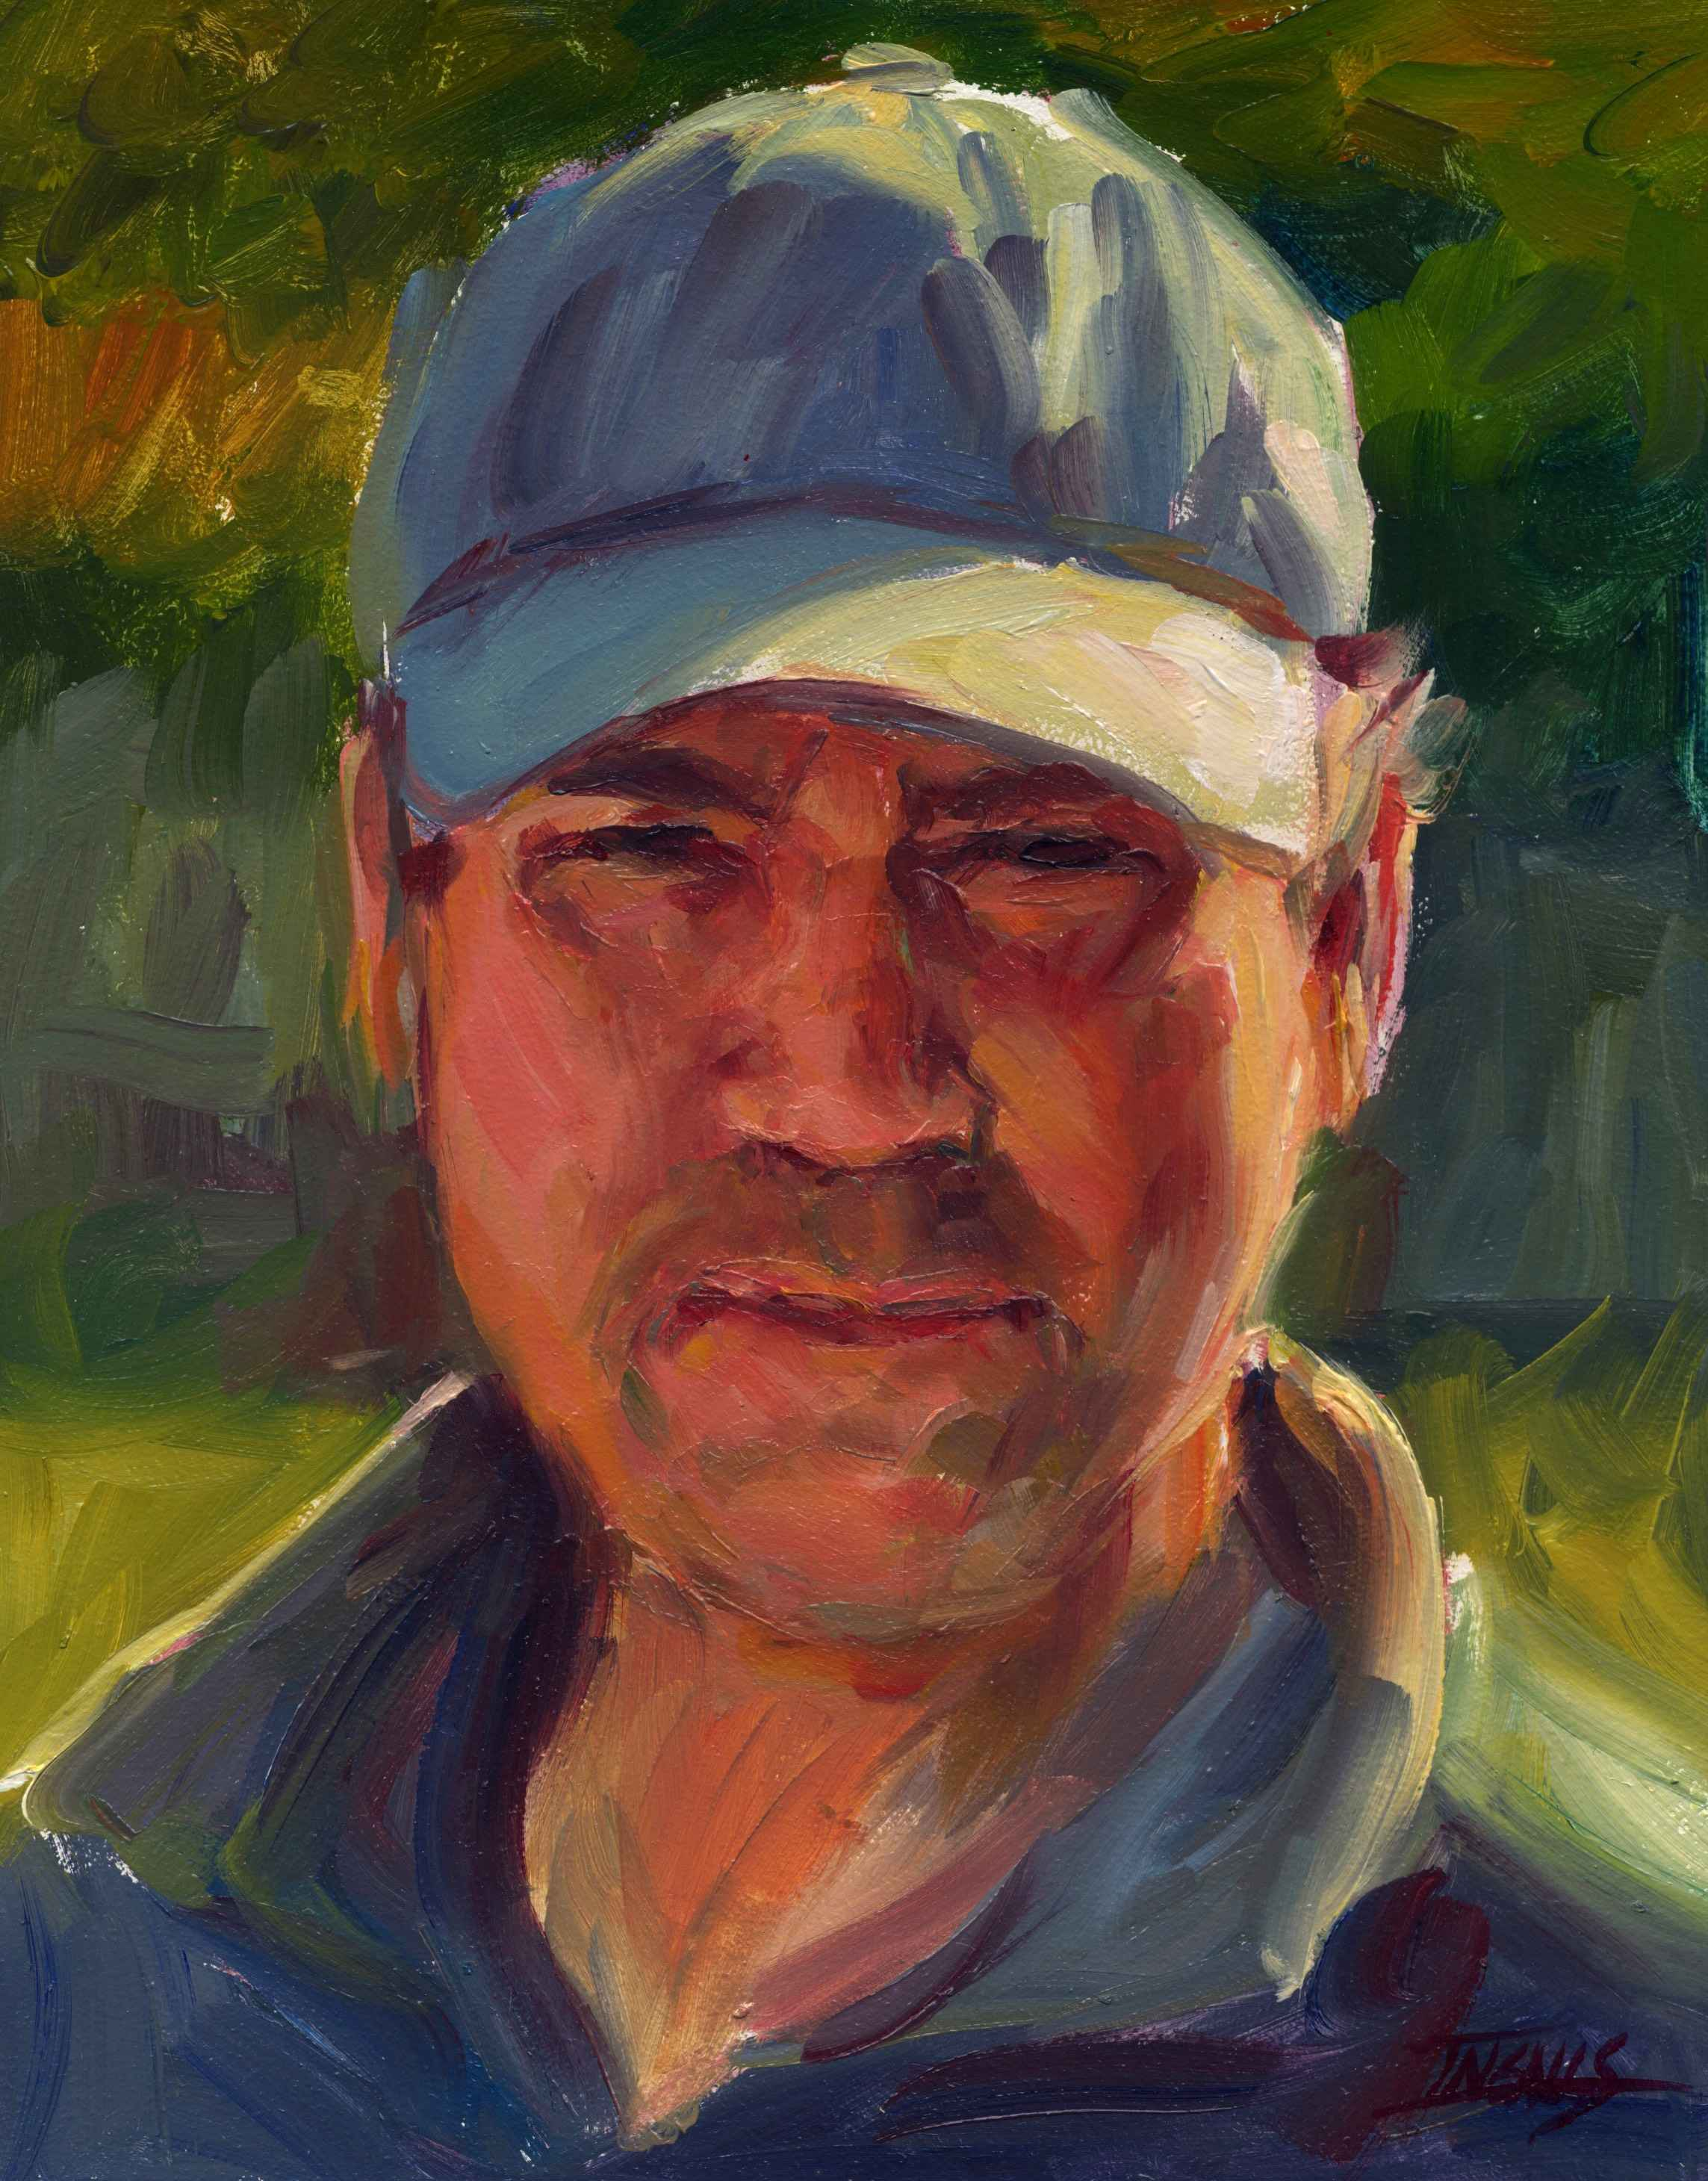 Thad by  Pam Ingalls - Masterpiece Online